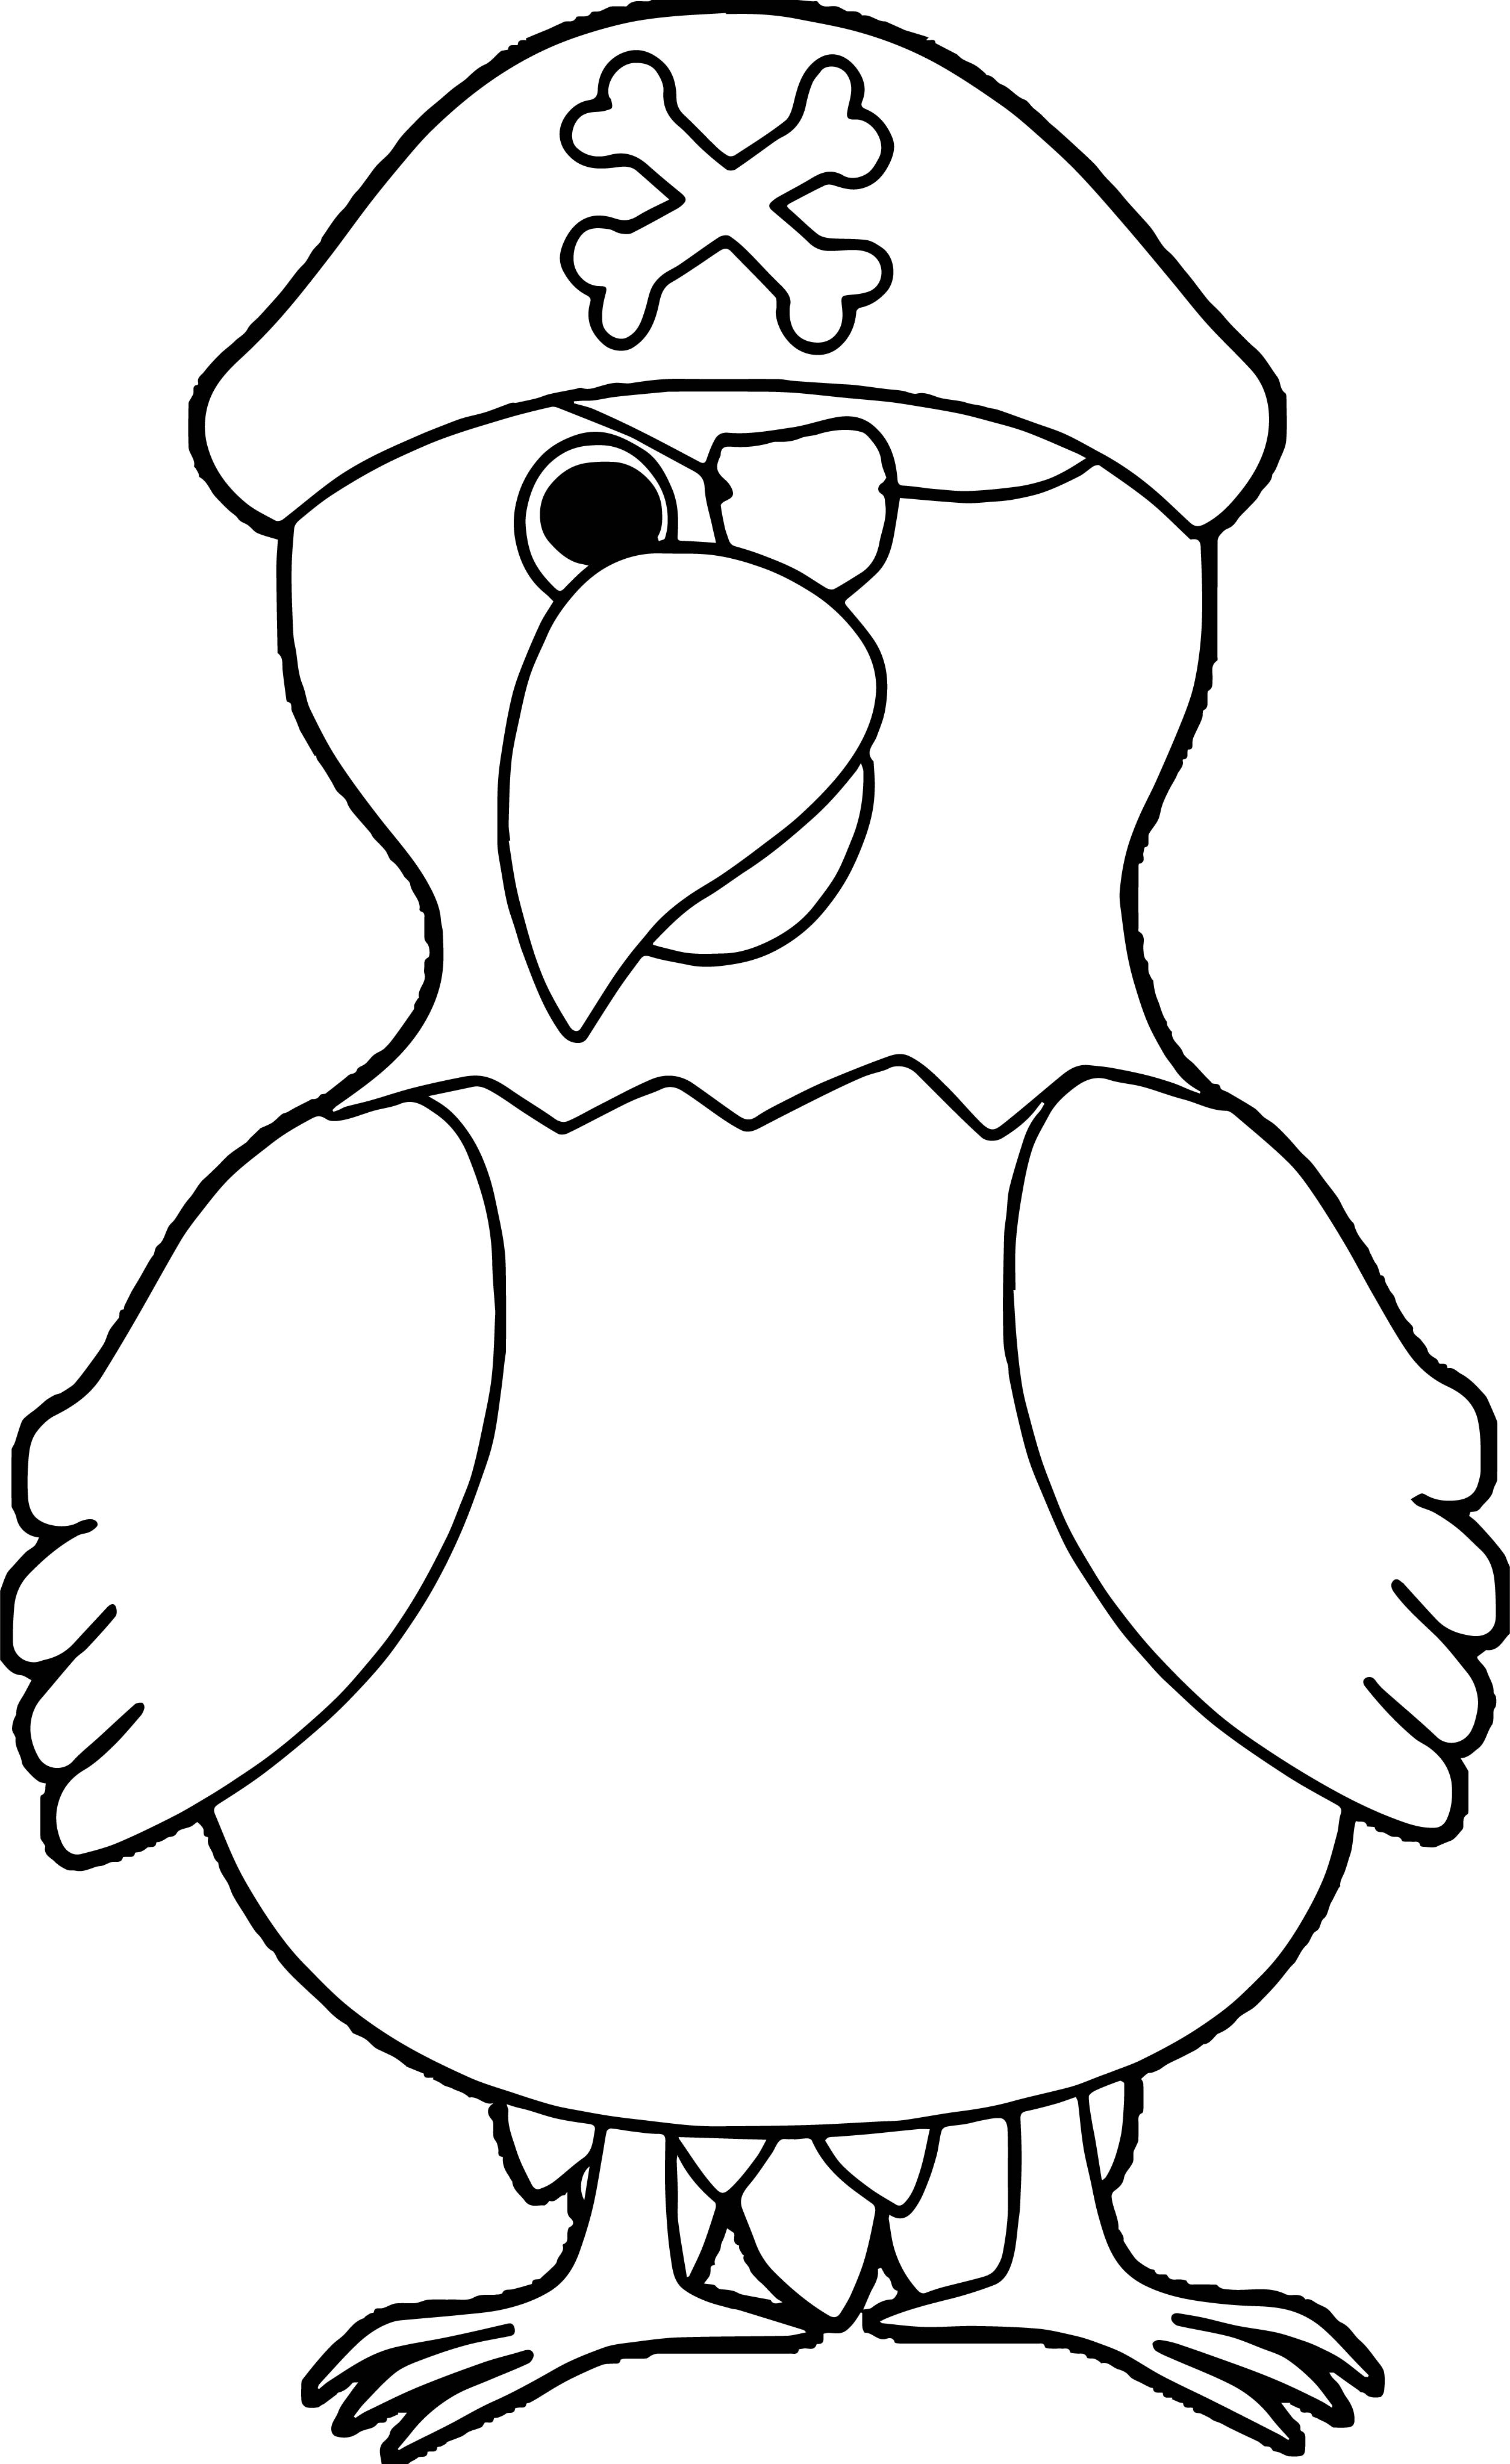 Parrot Coloring Page 116